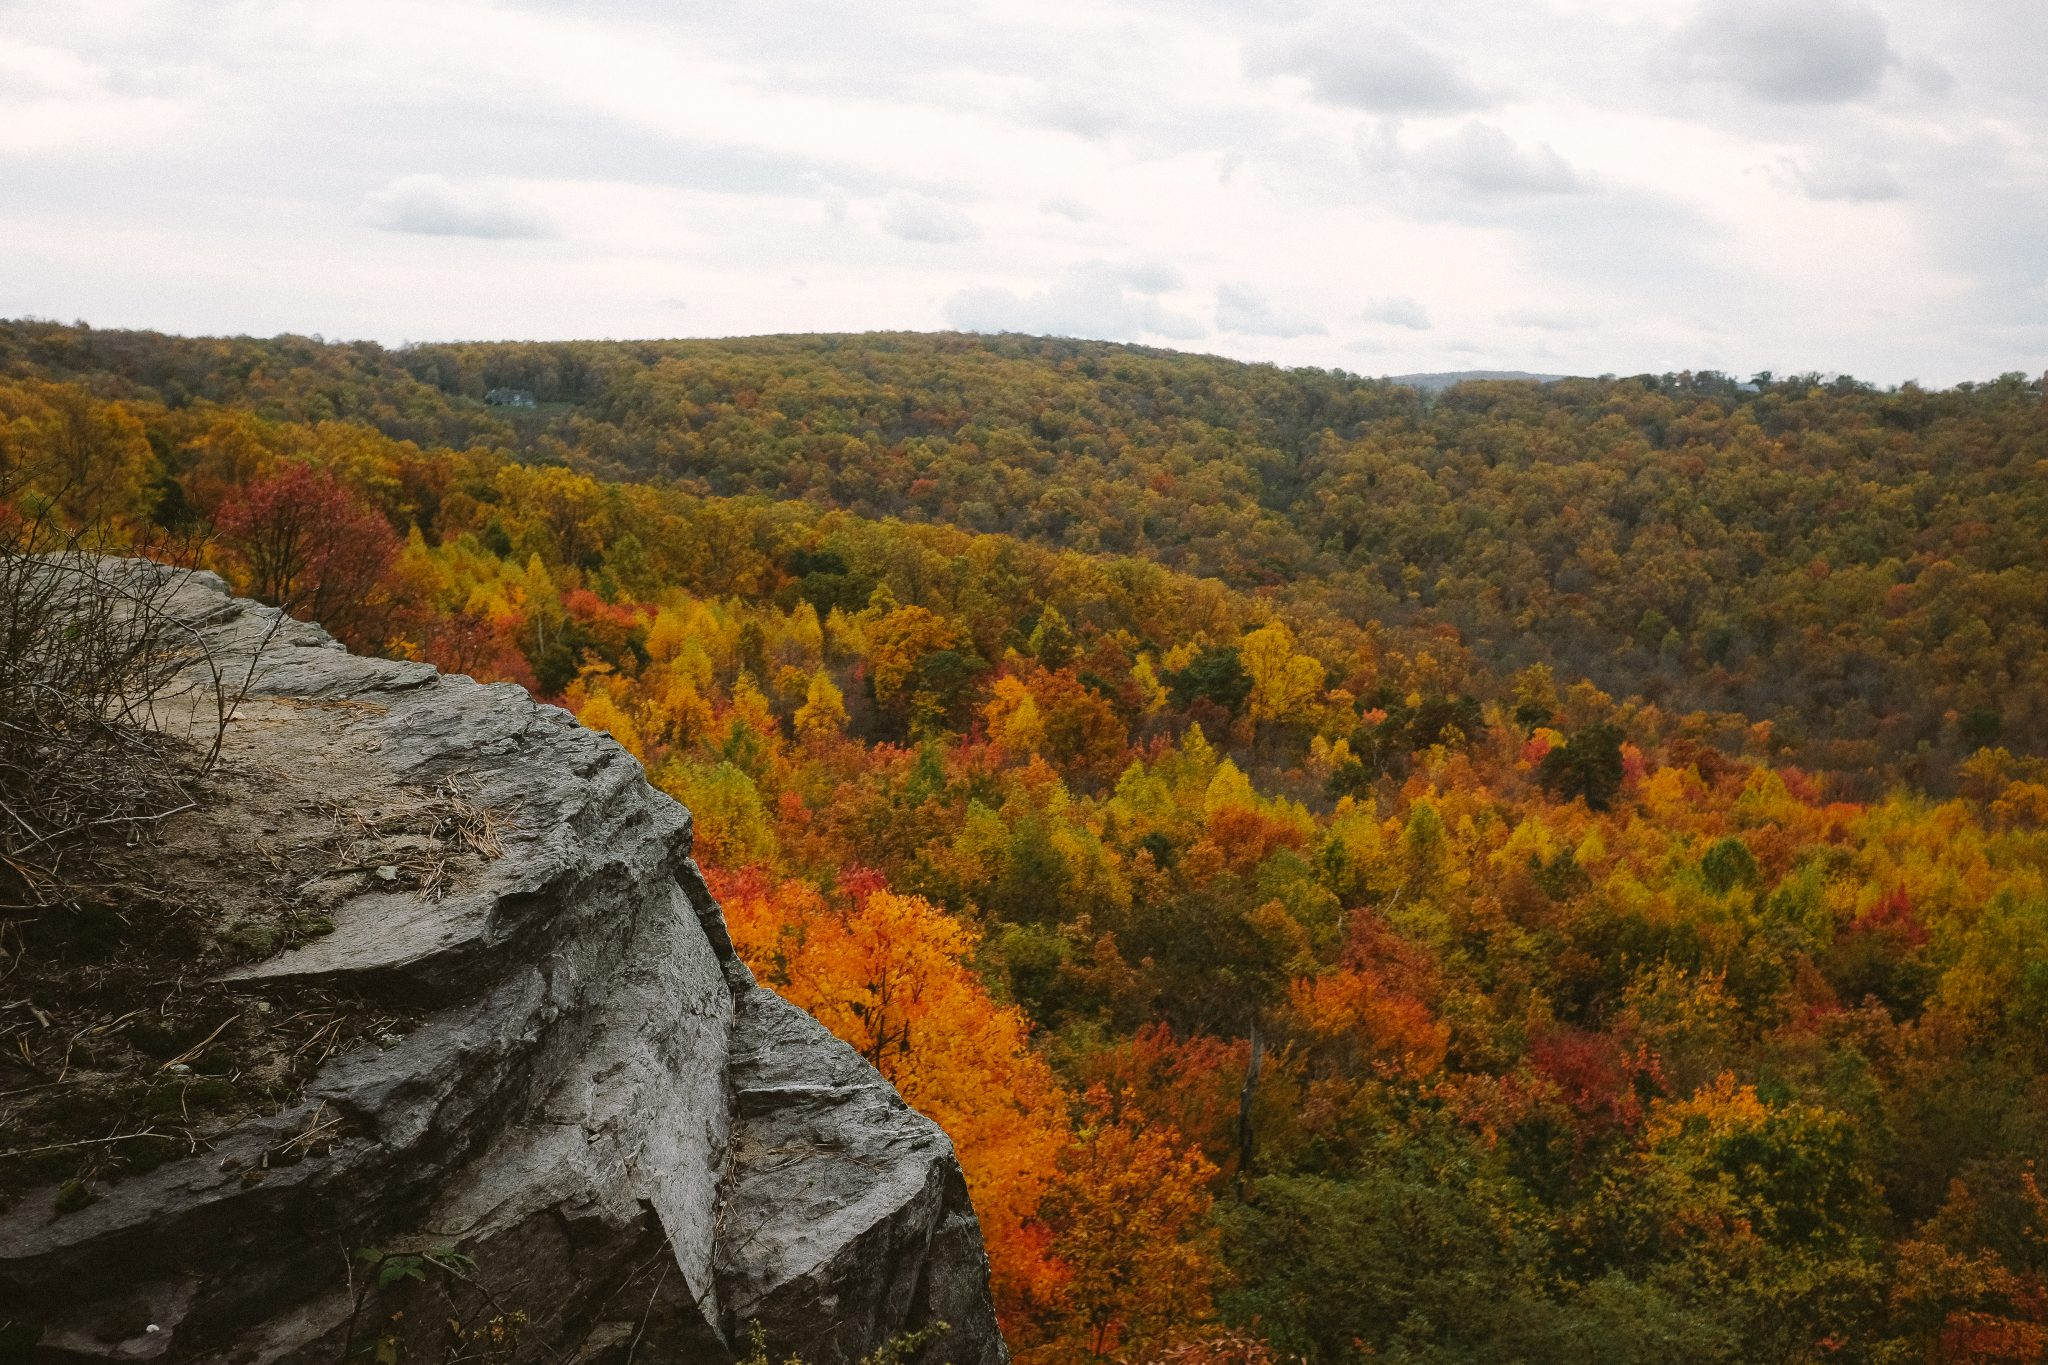 orange and yellow leaves in Shenandoah National Park